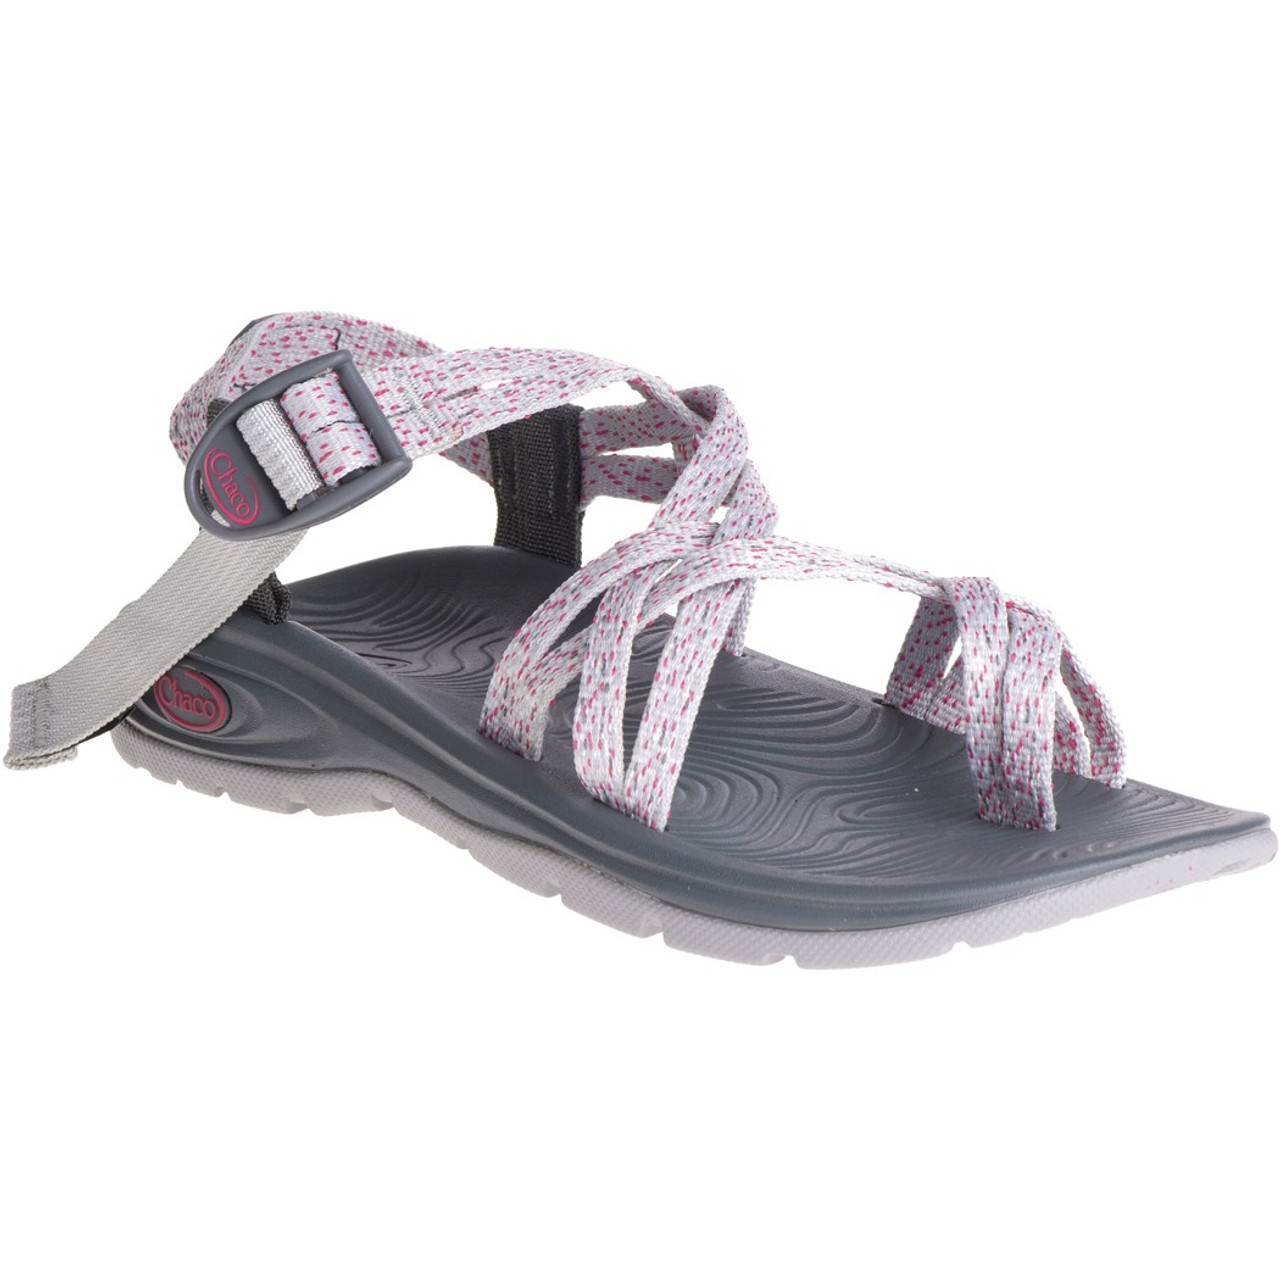 54f780eeaed3 Chacos Women s Sandals - Z Volv X2 - Fleck Pink - Surf and Dirt